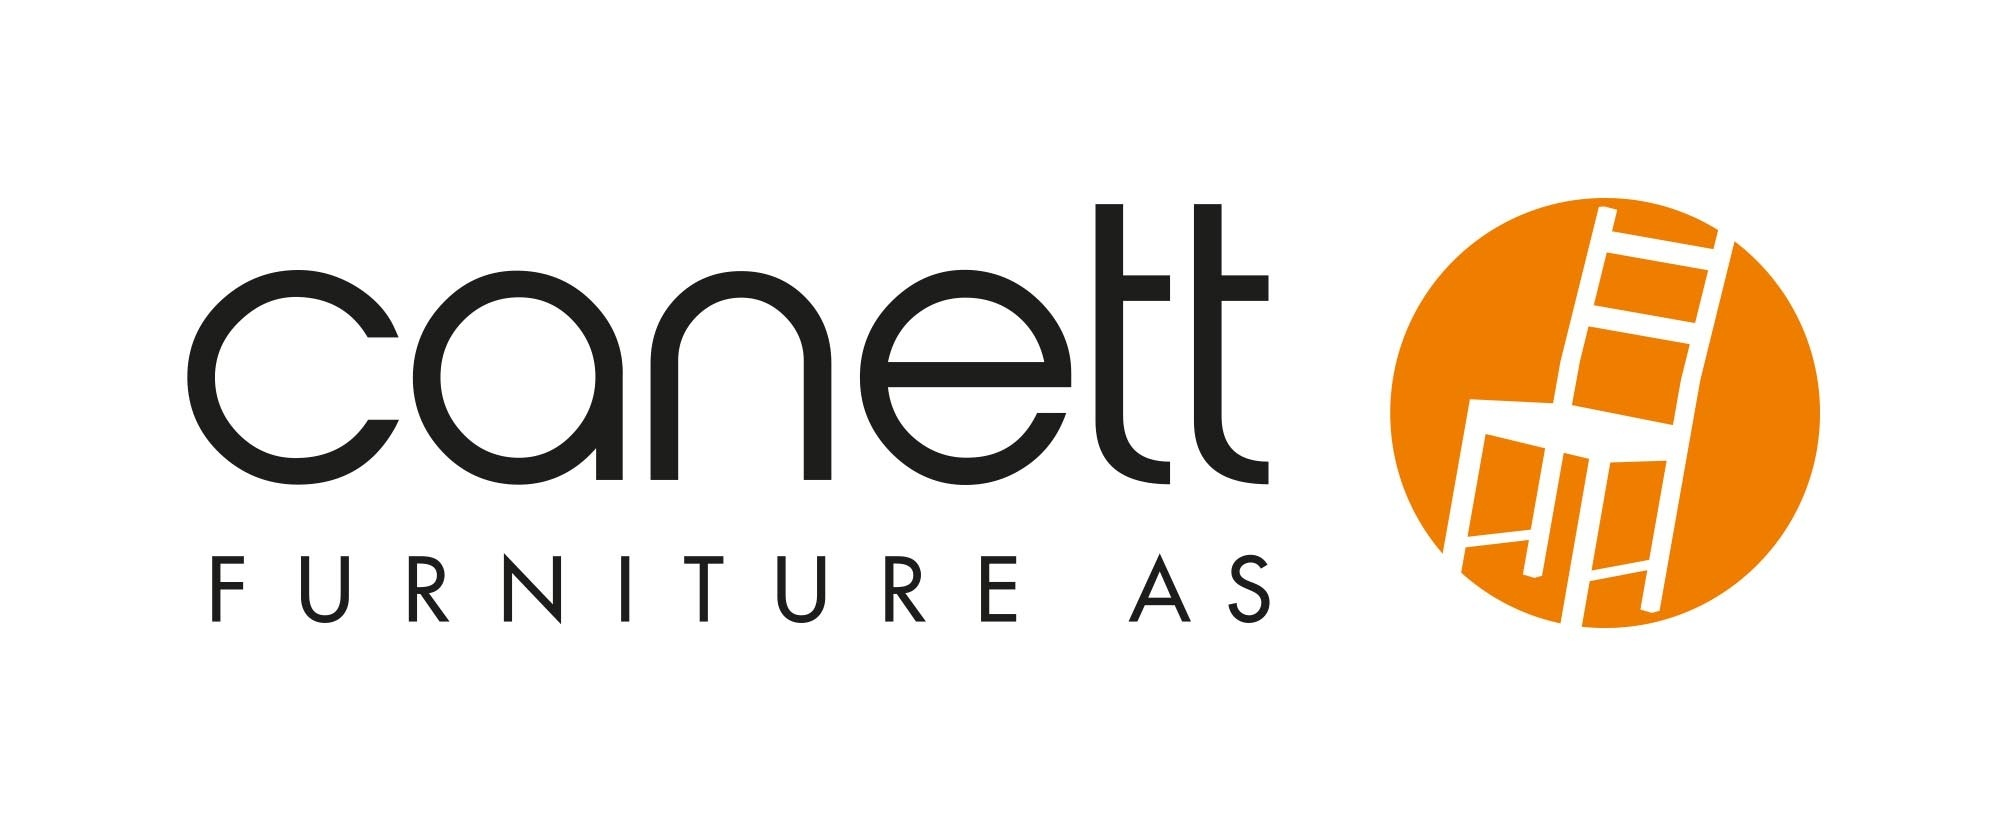 Canett Furniture